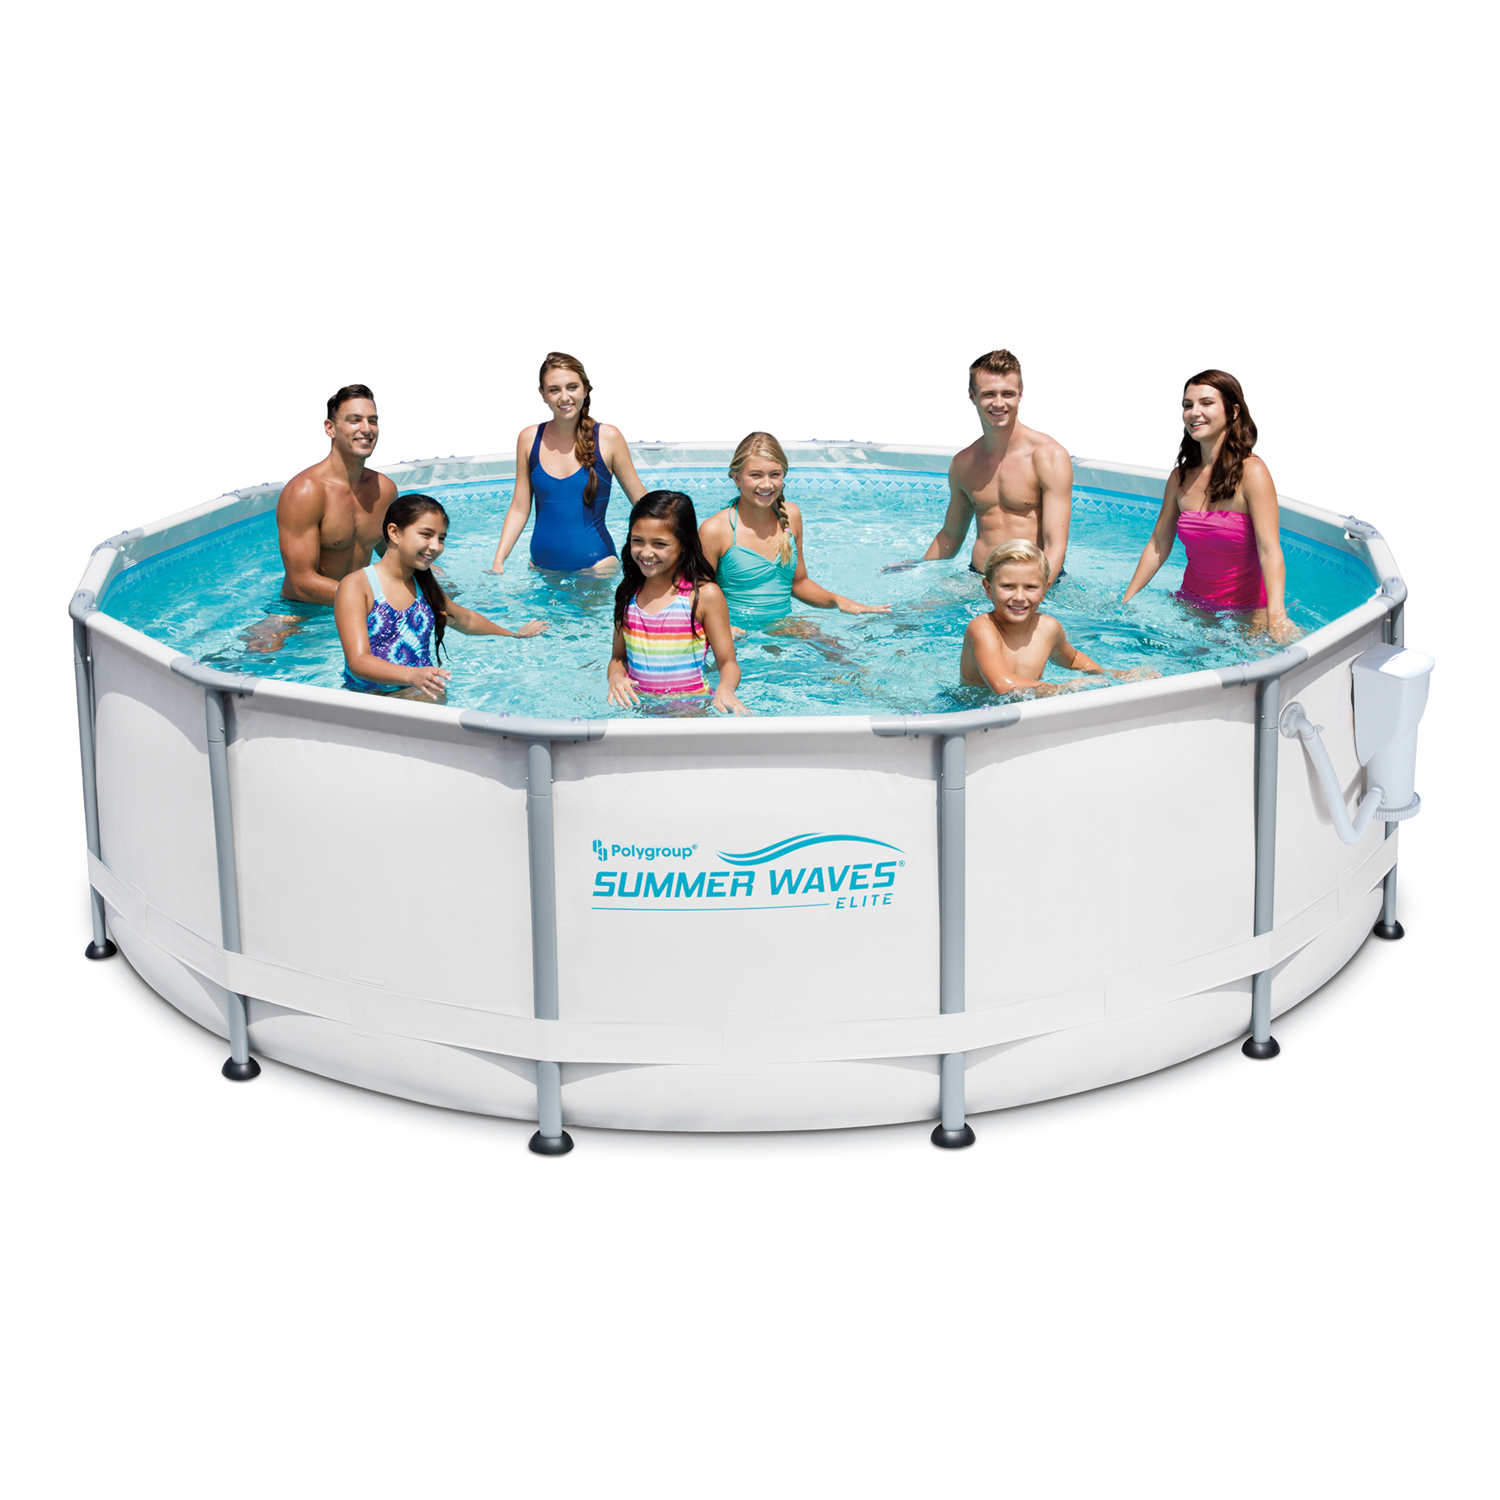 "Summer Waves Elite 14' x 42"" Premium Frame Above Ground Swimming Pool with Filter Pump System And Deluxe Accessory Set"